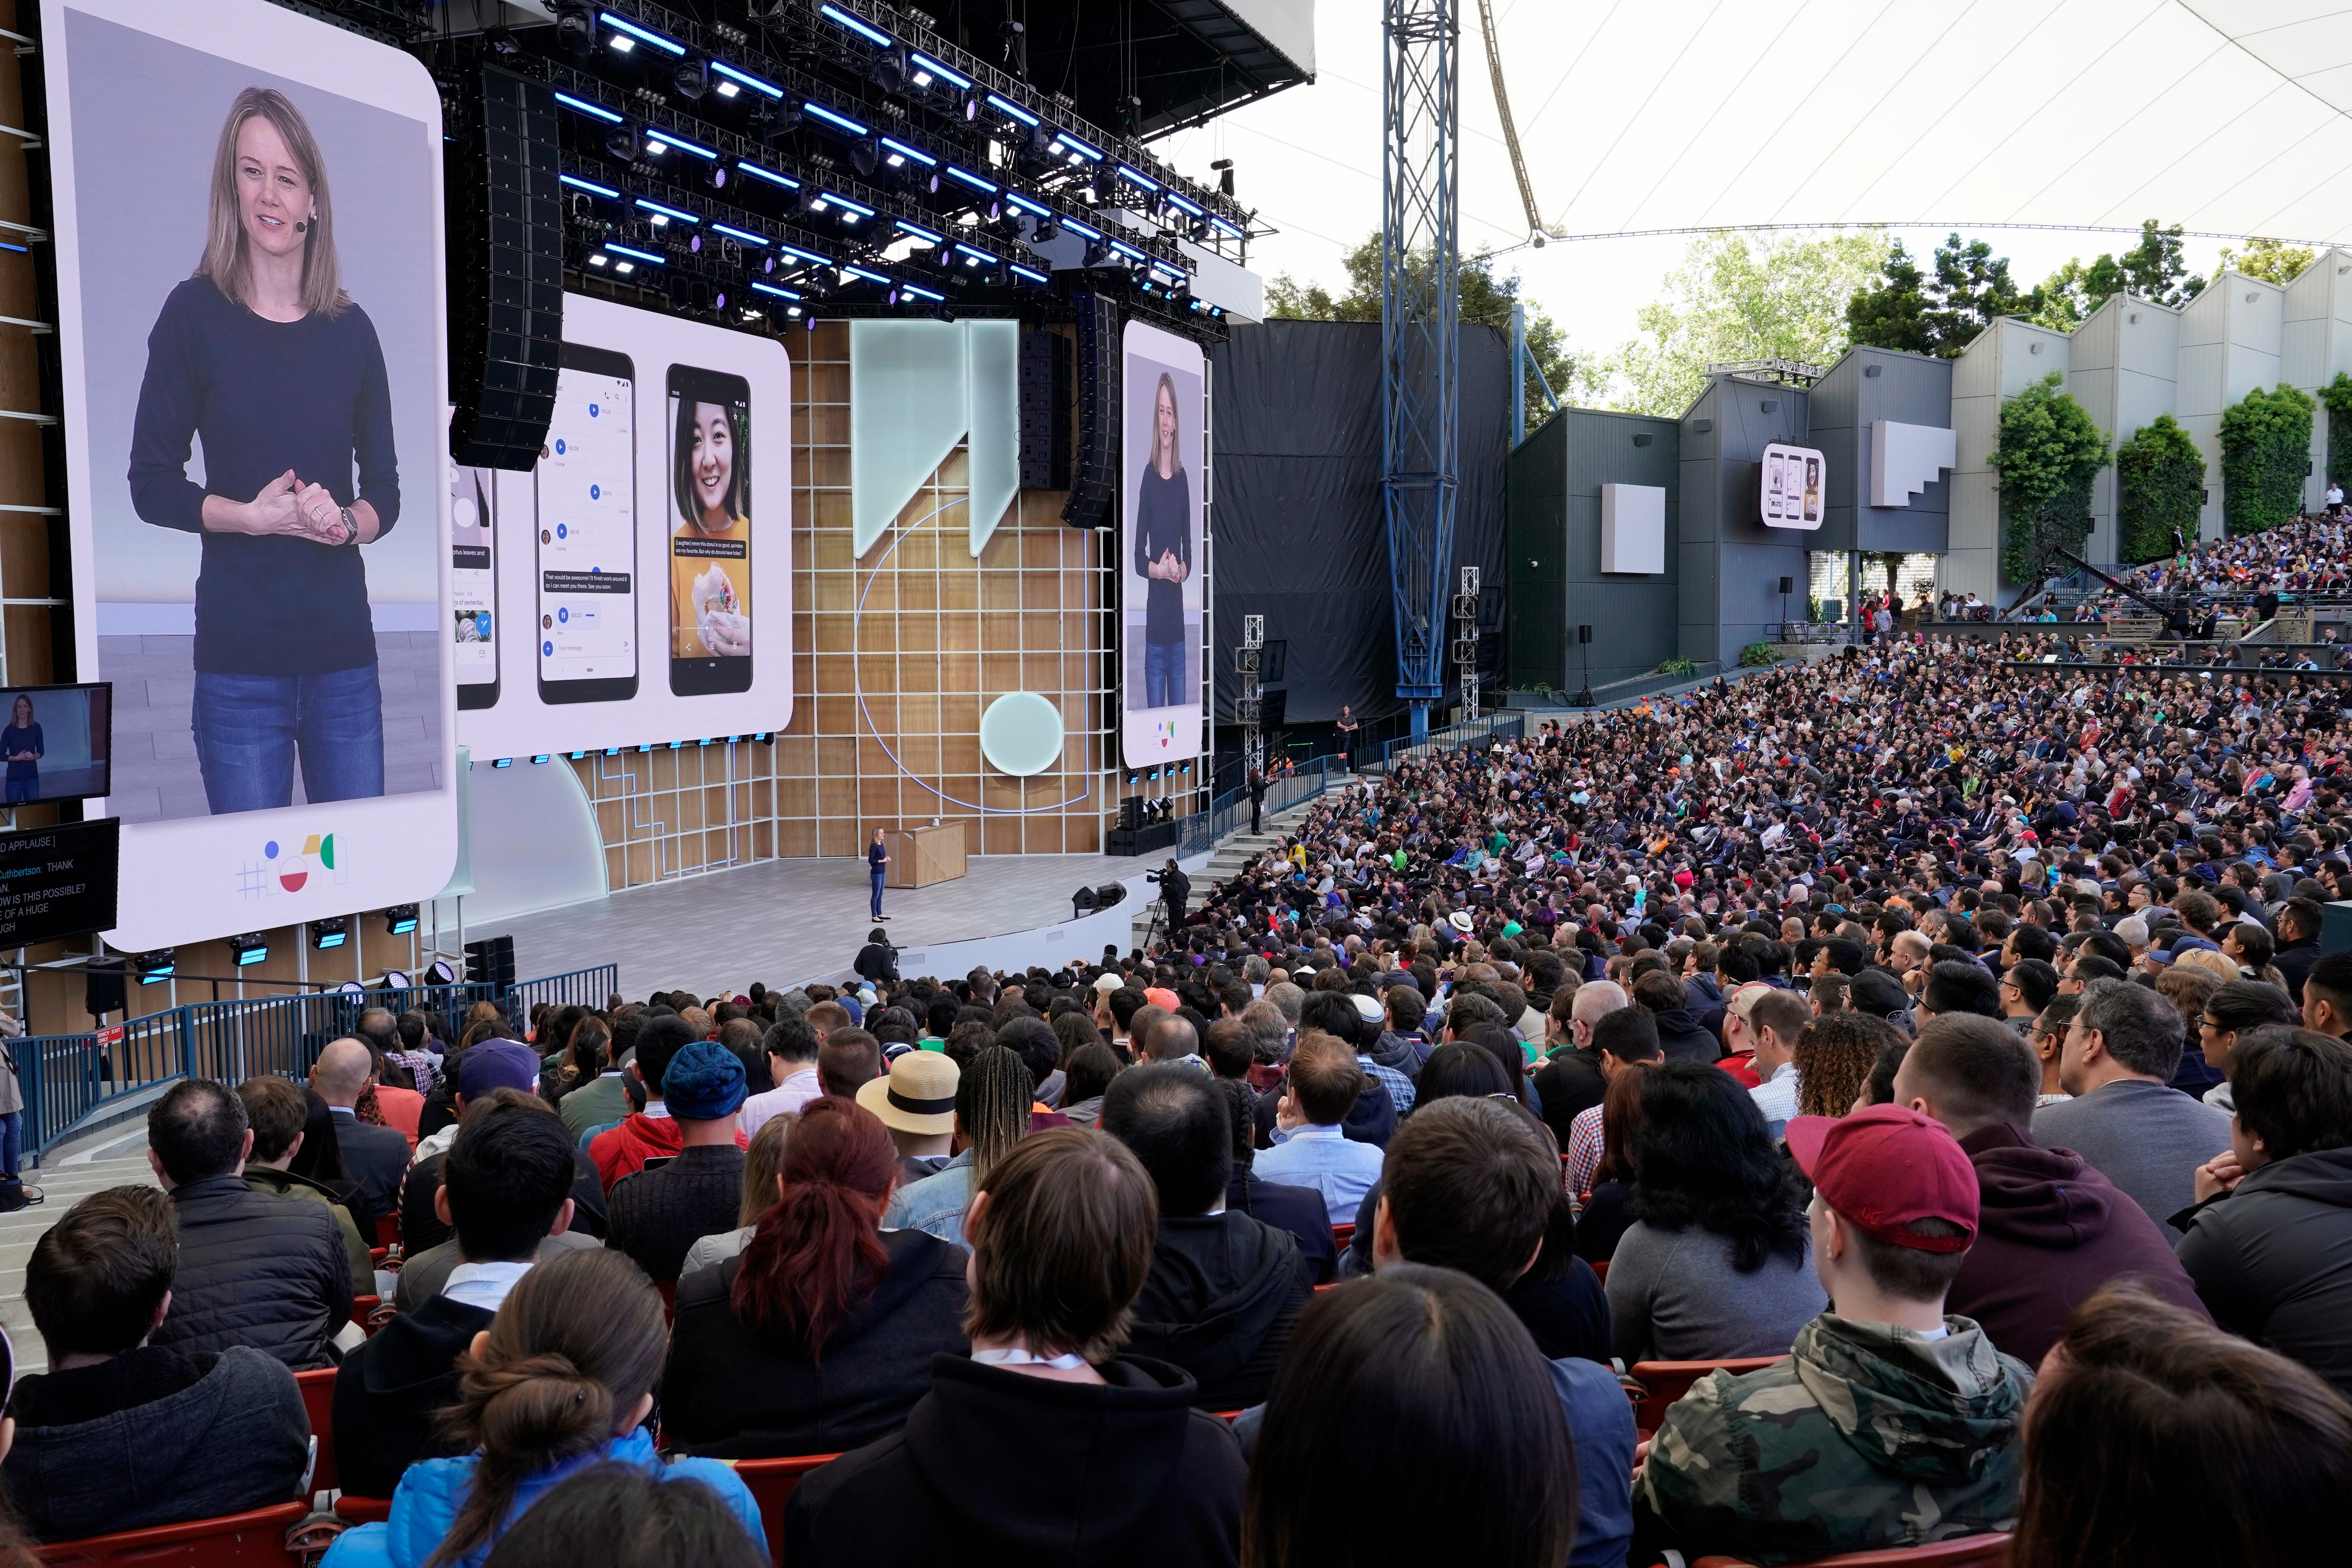 Google's Android product manager Stephanie Cuthbertson demos upcoming enhancements to Android during the keynote at Google I/O at the Shoreline Amphitheatre in Mountain View, Calif. on May 7, 2019.